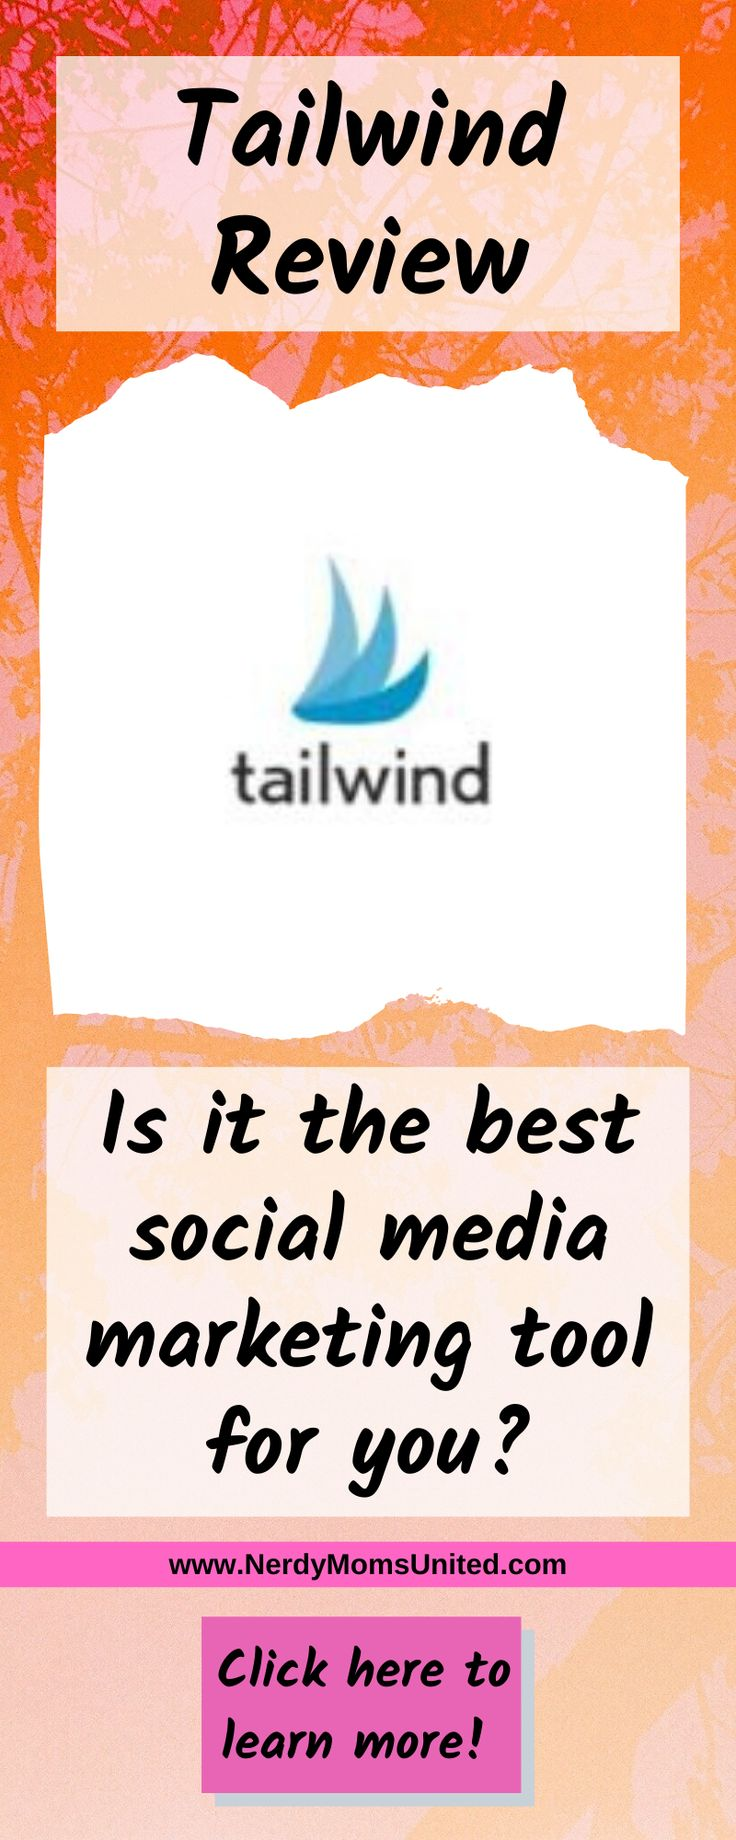 In this review, I will tell you about the Tailwind app and